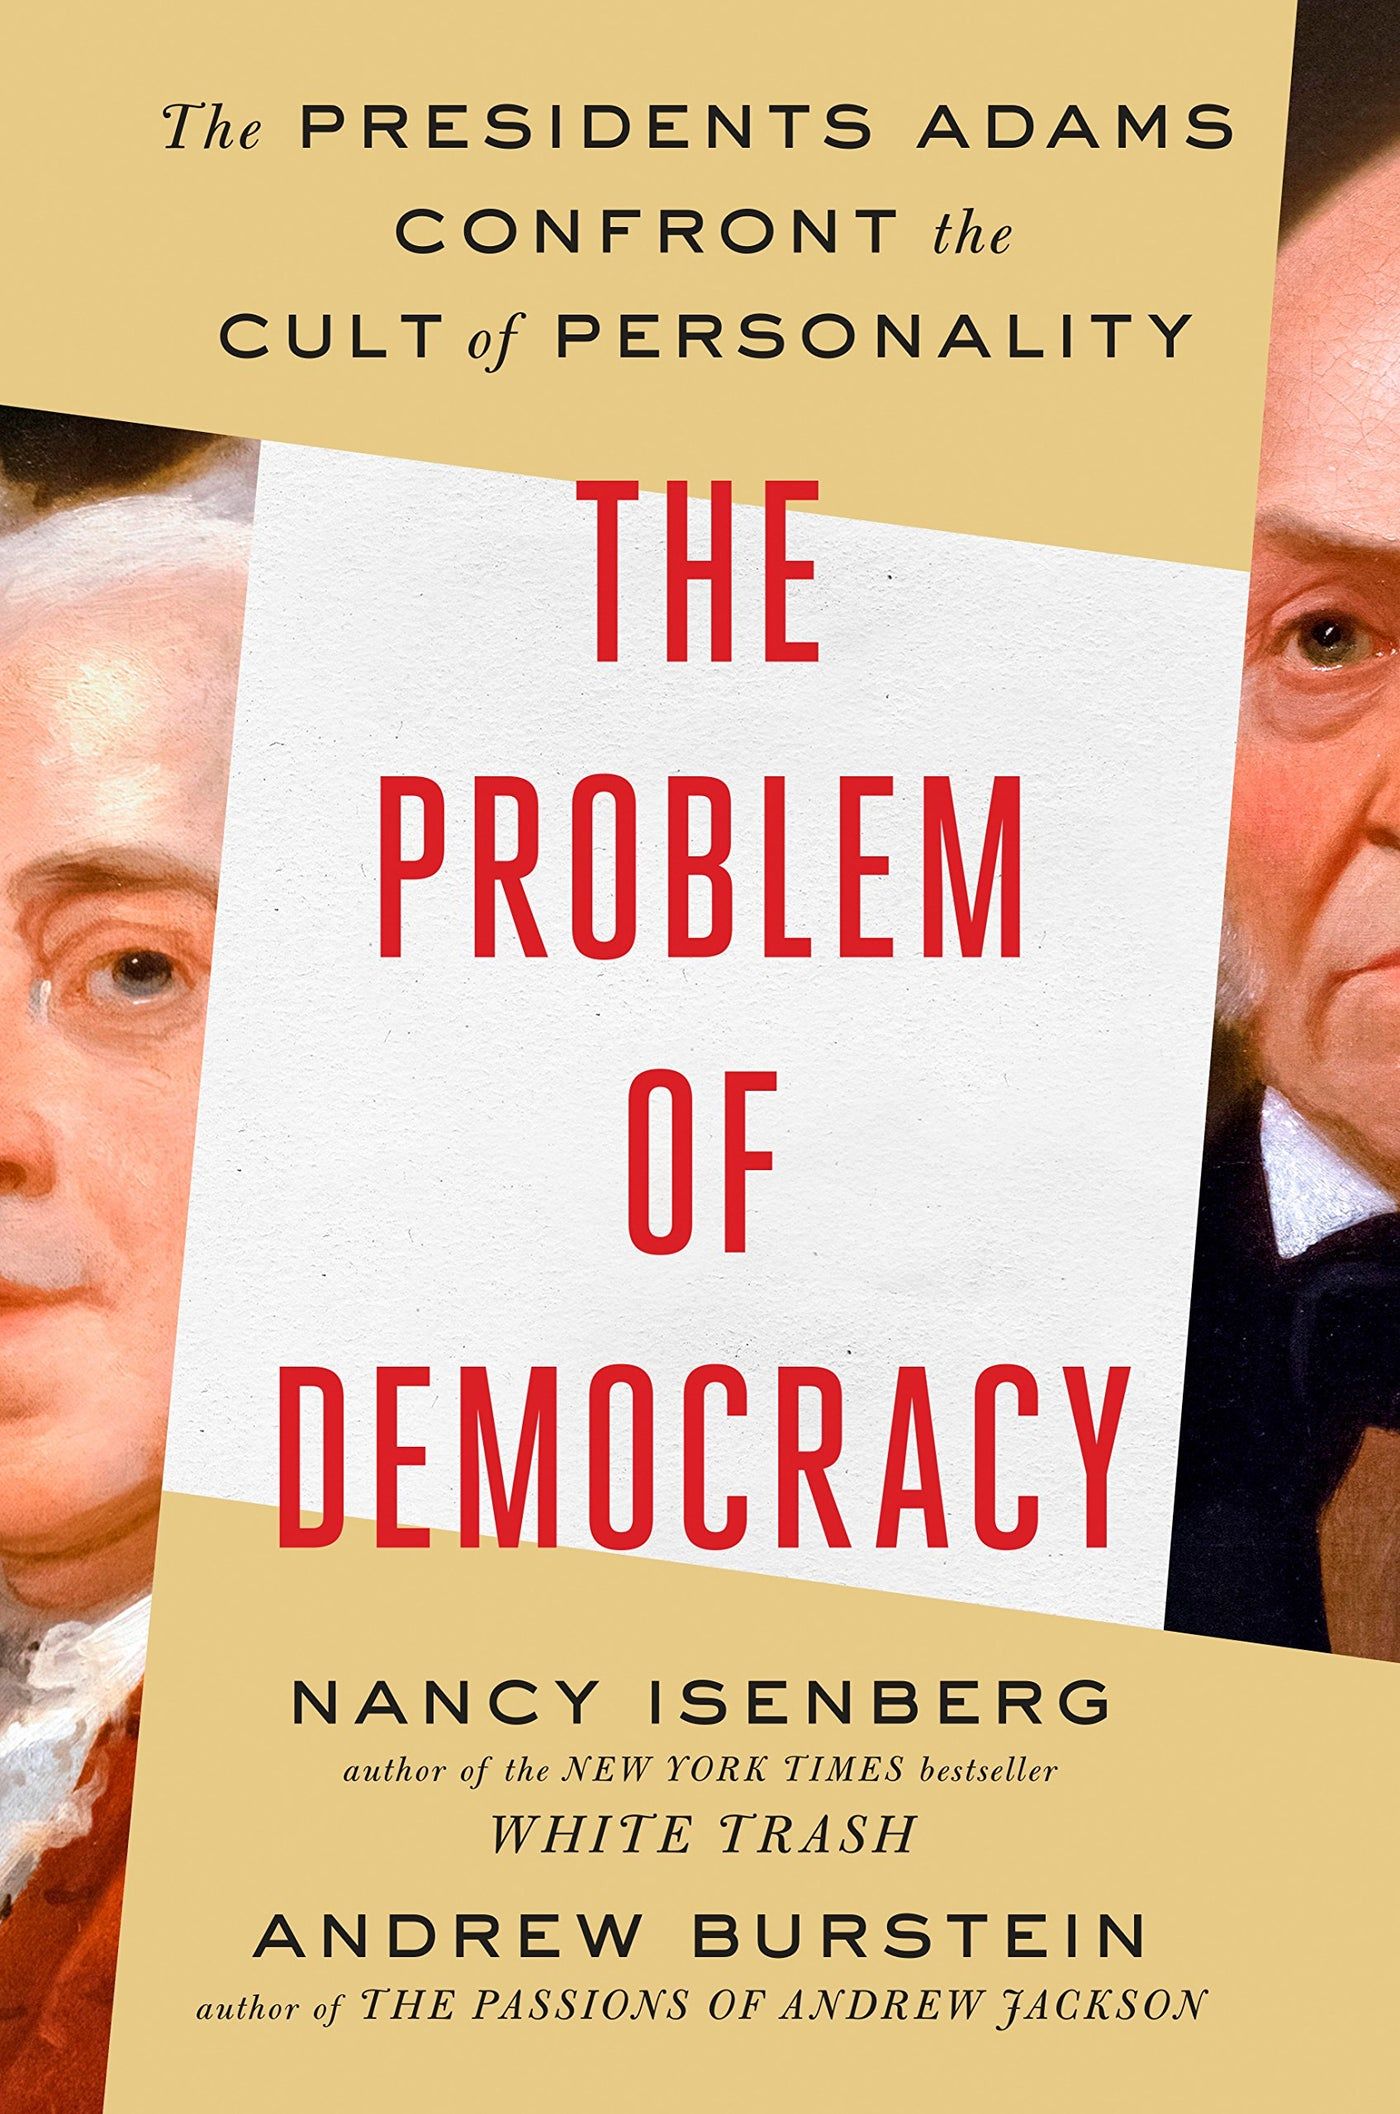 The Problem of Democracy: The Presidents Adams Confront the Cult of Personality by Nancy Isenberg and Andrew Burstein